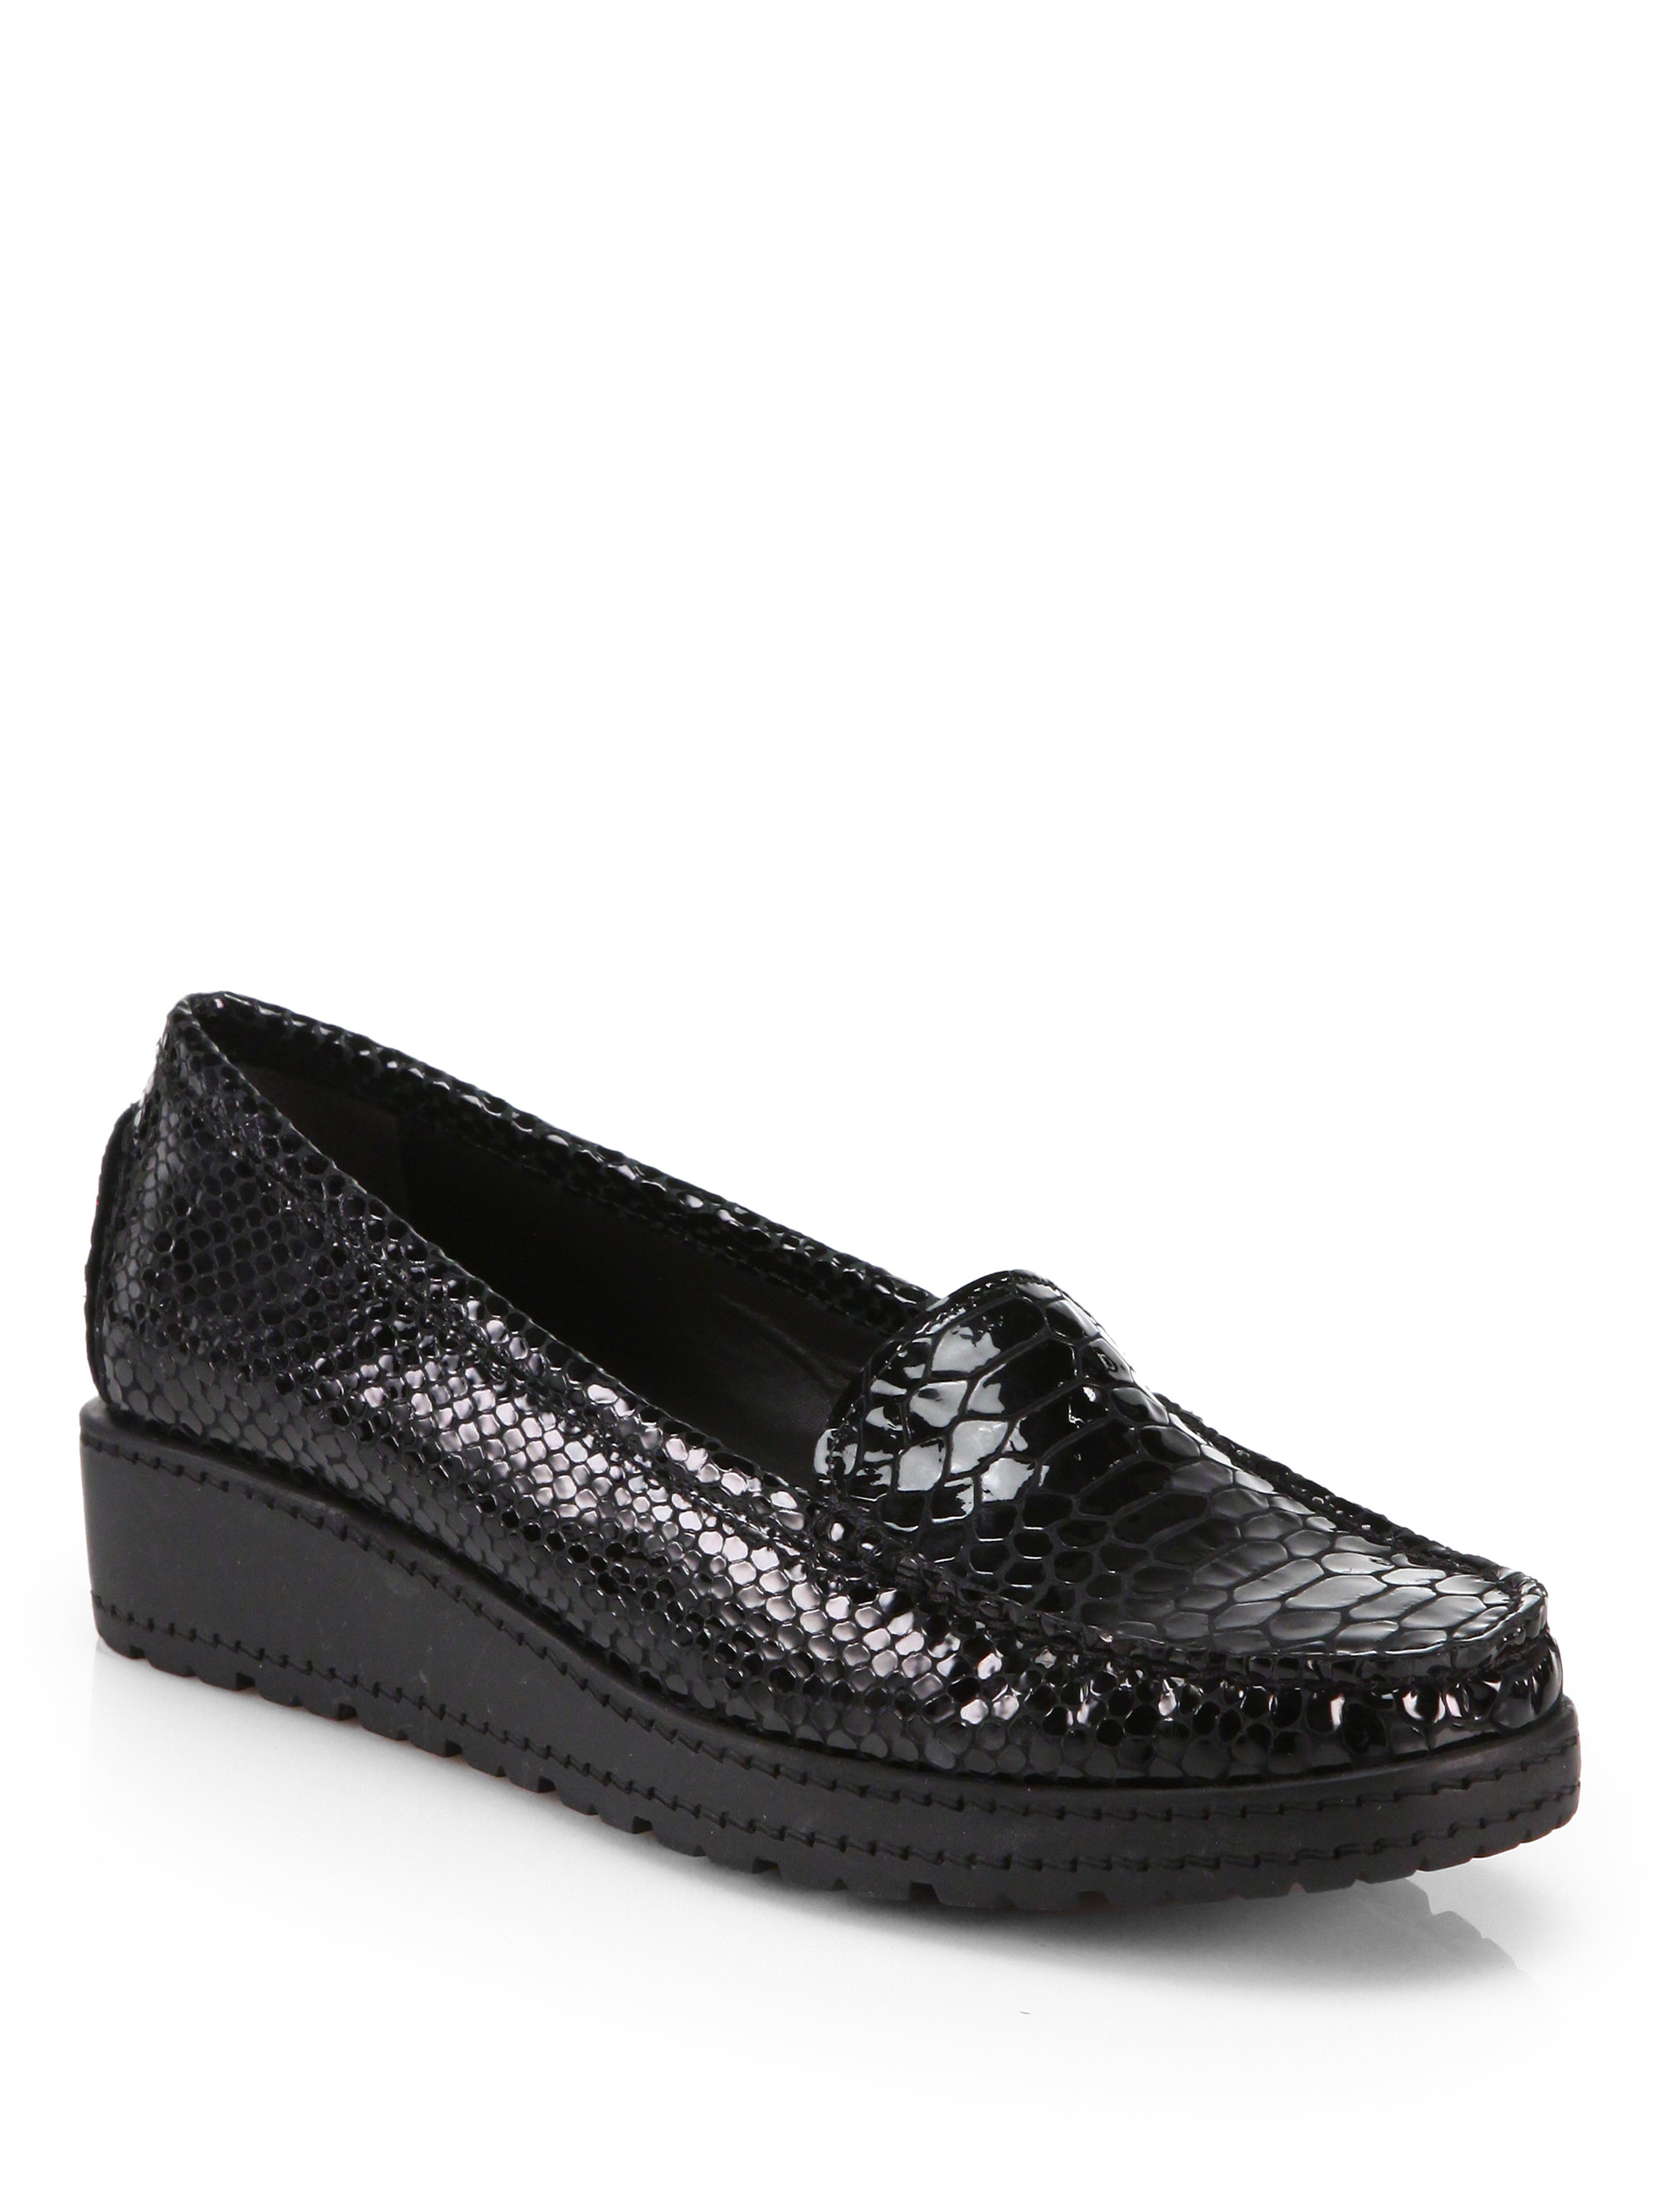 discount cheap price discount fake Stuart Weitzman Embossed Patent Loafers geniue stockist sale online lWRSf